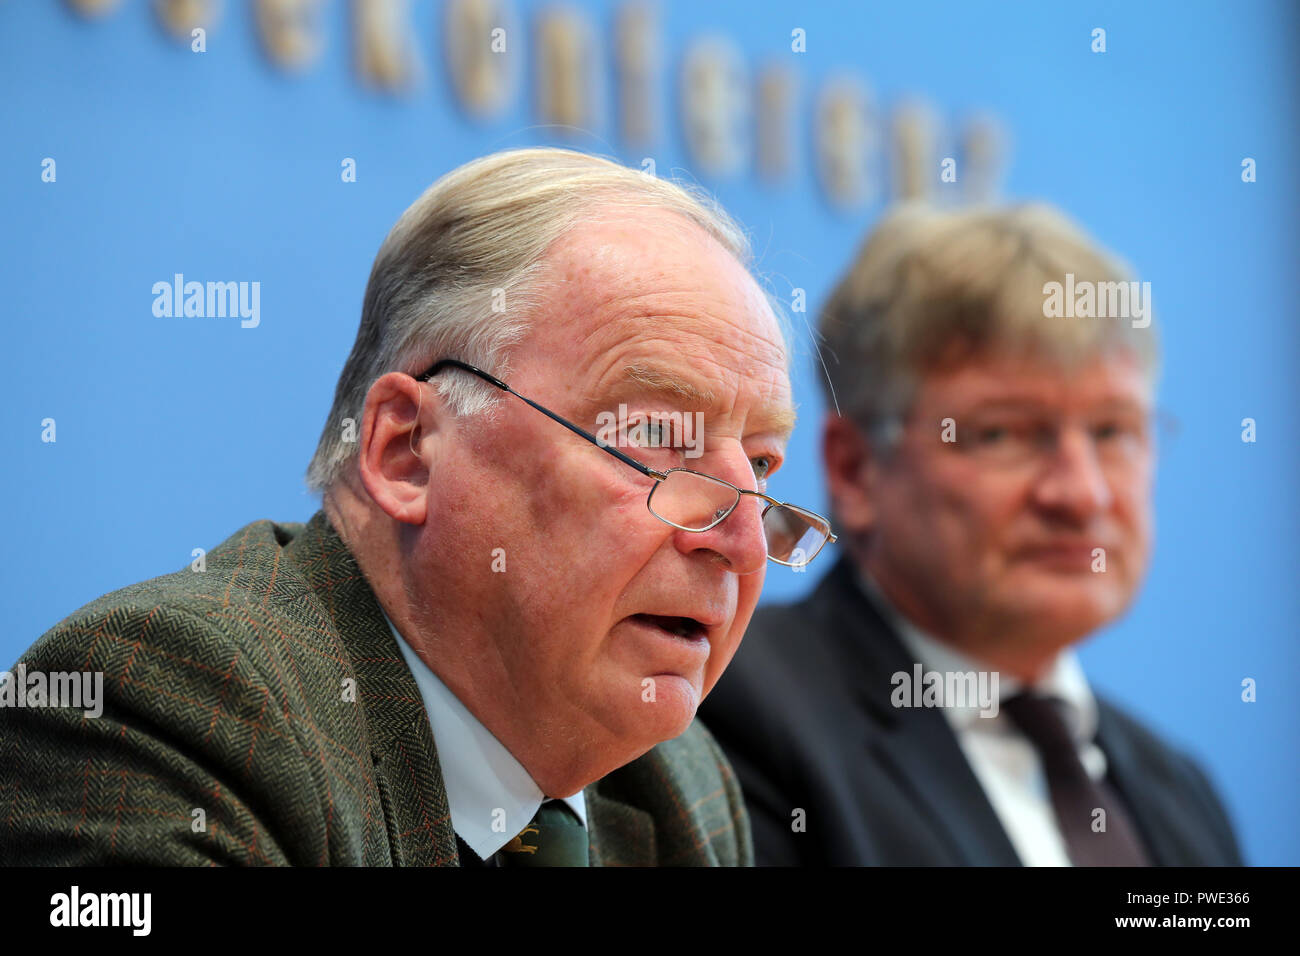 15 October 2018, Berlin: 15 October 2018, Germany, Berlin:Joerg Meuthen (R) and Alexander Gauland, party chairman of the AfD, take their places on the podium of the federal press conference and then answer questions about the results of the state elections in Bavaria. Photo: Jens Büttner/dpa-Zentralbild/dpa - Stock Image